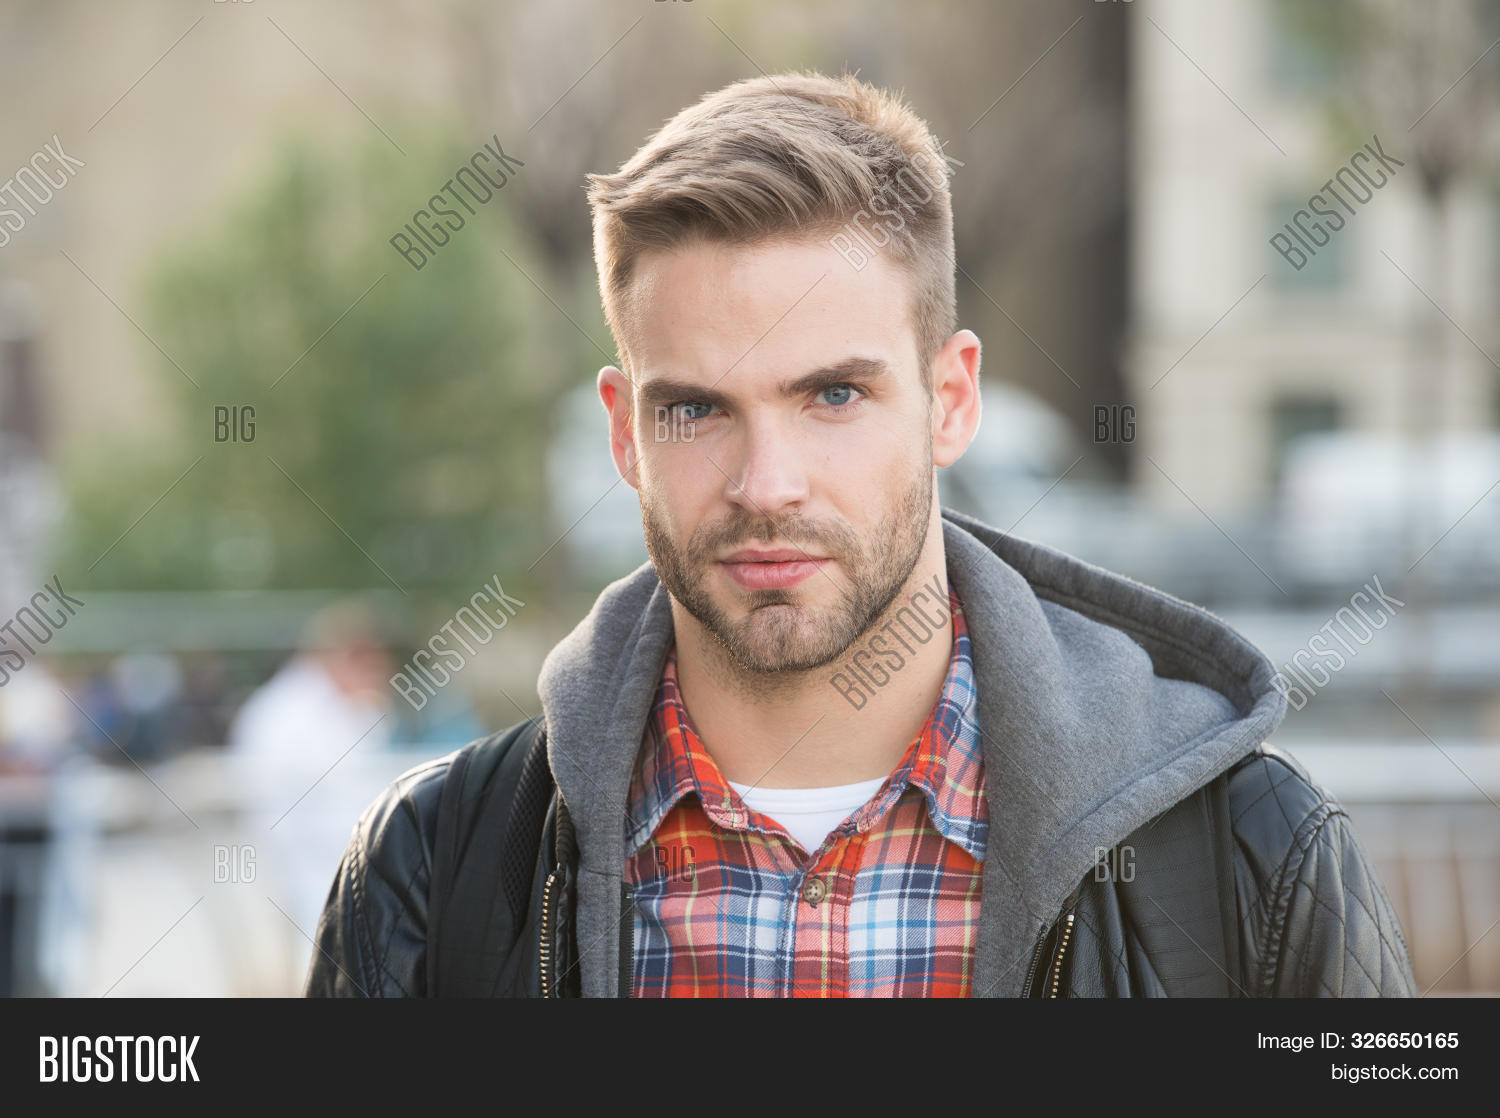 adult,appearance,attractive,background,barber,beard,bearded,beauty,bristle,care,casual,caucasian,charisma,concept,confidence,confident,face,facial,fashion,fashionable,glance,guy,hair,hairdo,hairstyle,handsome,human,lifestyle,male,man,masculine,modern,moustache,mustache,person,portrait,sexy,skin,strict,style,stylish,trend,trendy,unshaven,urban,young,youth